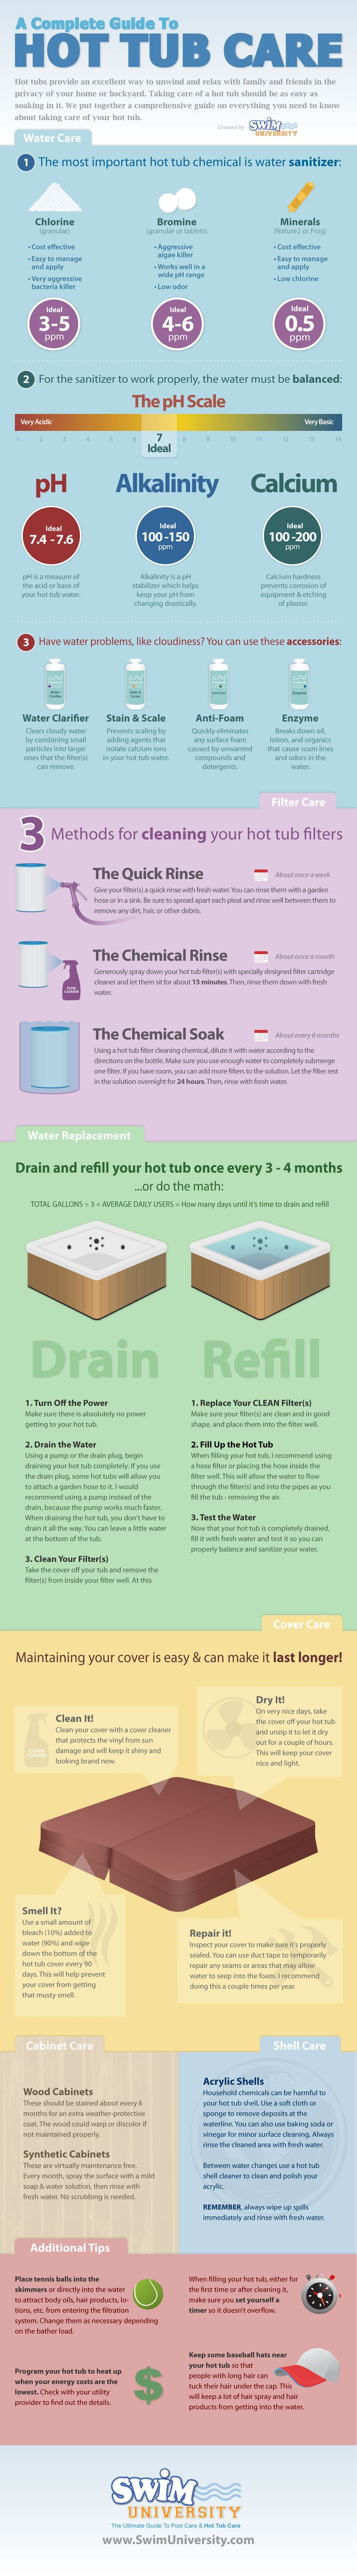 A Complete Guide To Hot Tub Care [INFOGRAPHIC] | Hot Tub Blog | The Spa Depot